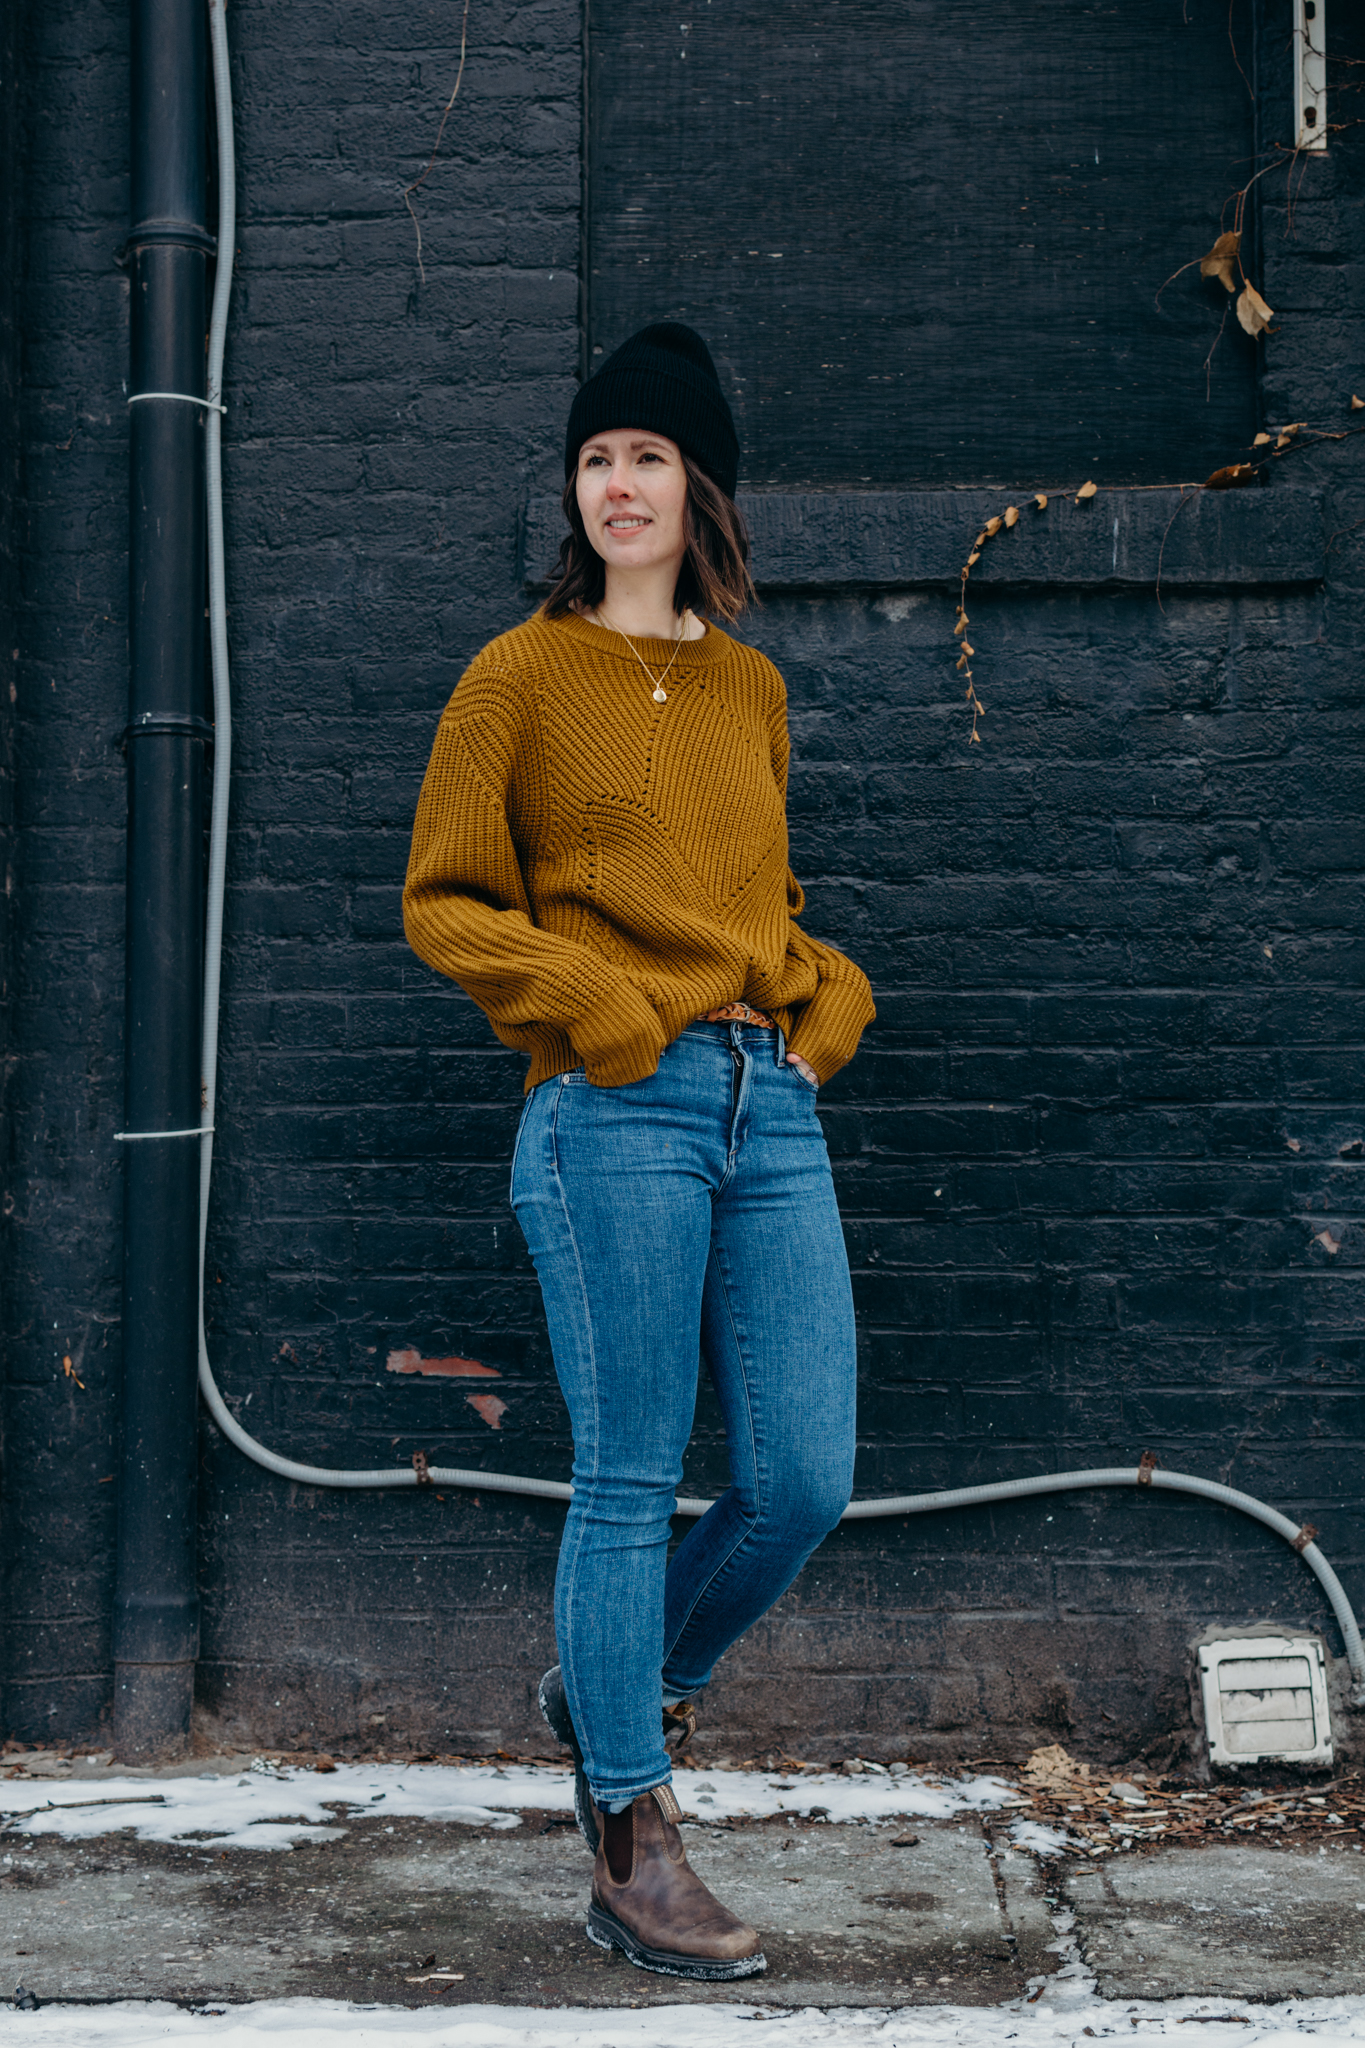 blundstone outfit womens wilfred serment sweater artizia citizens of humanity rocket skinny jeans outfit toronto street style - style apotheca